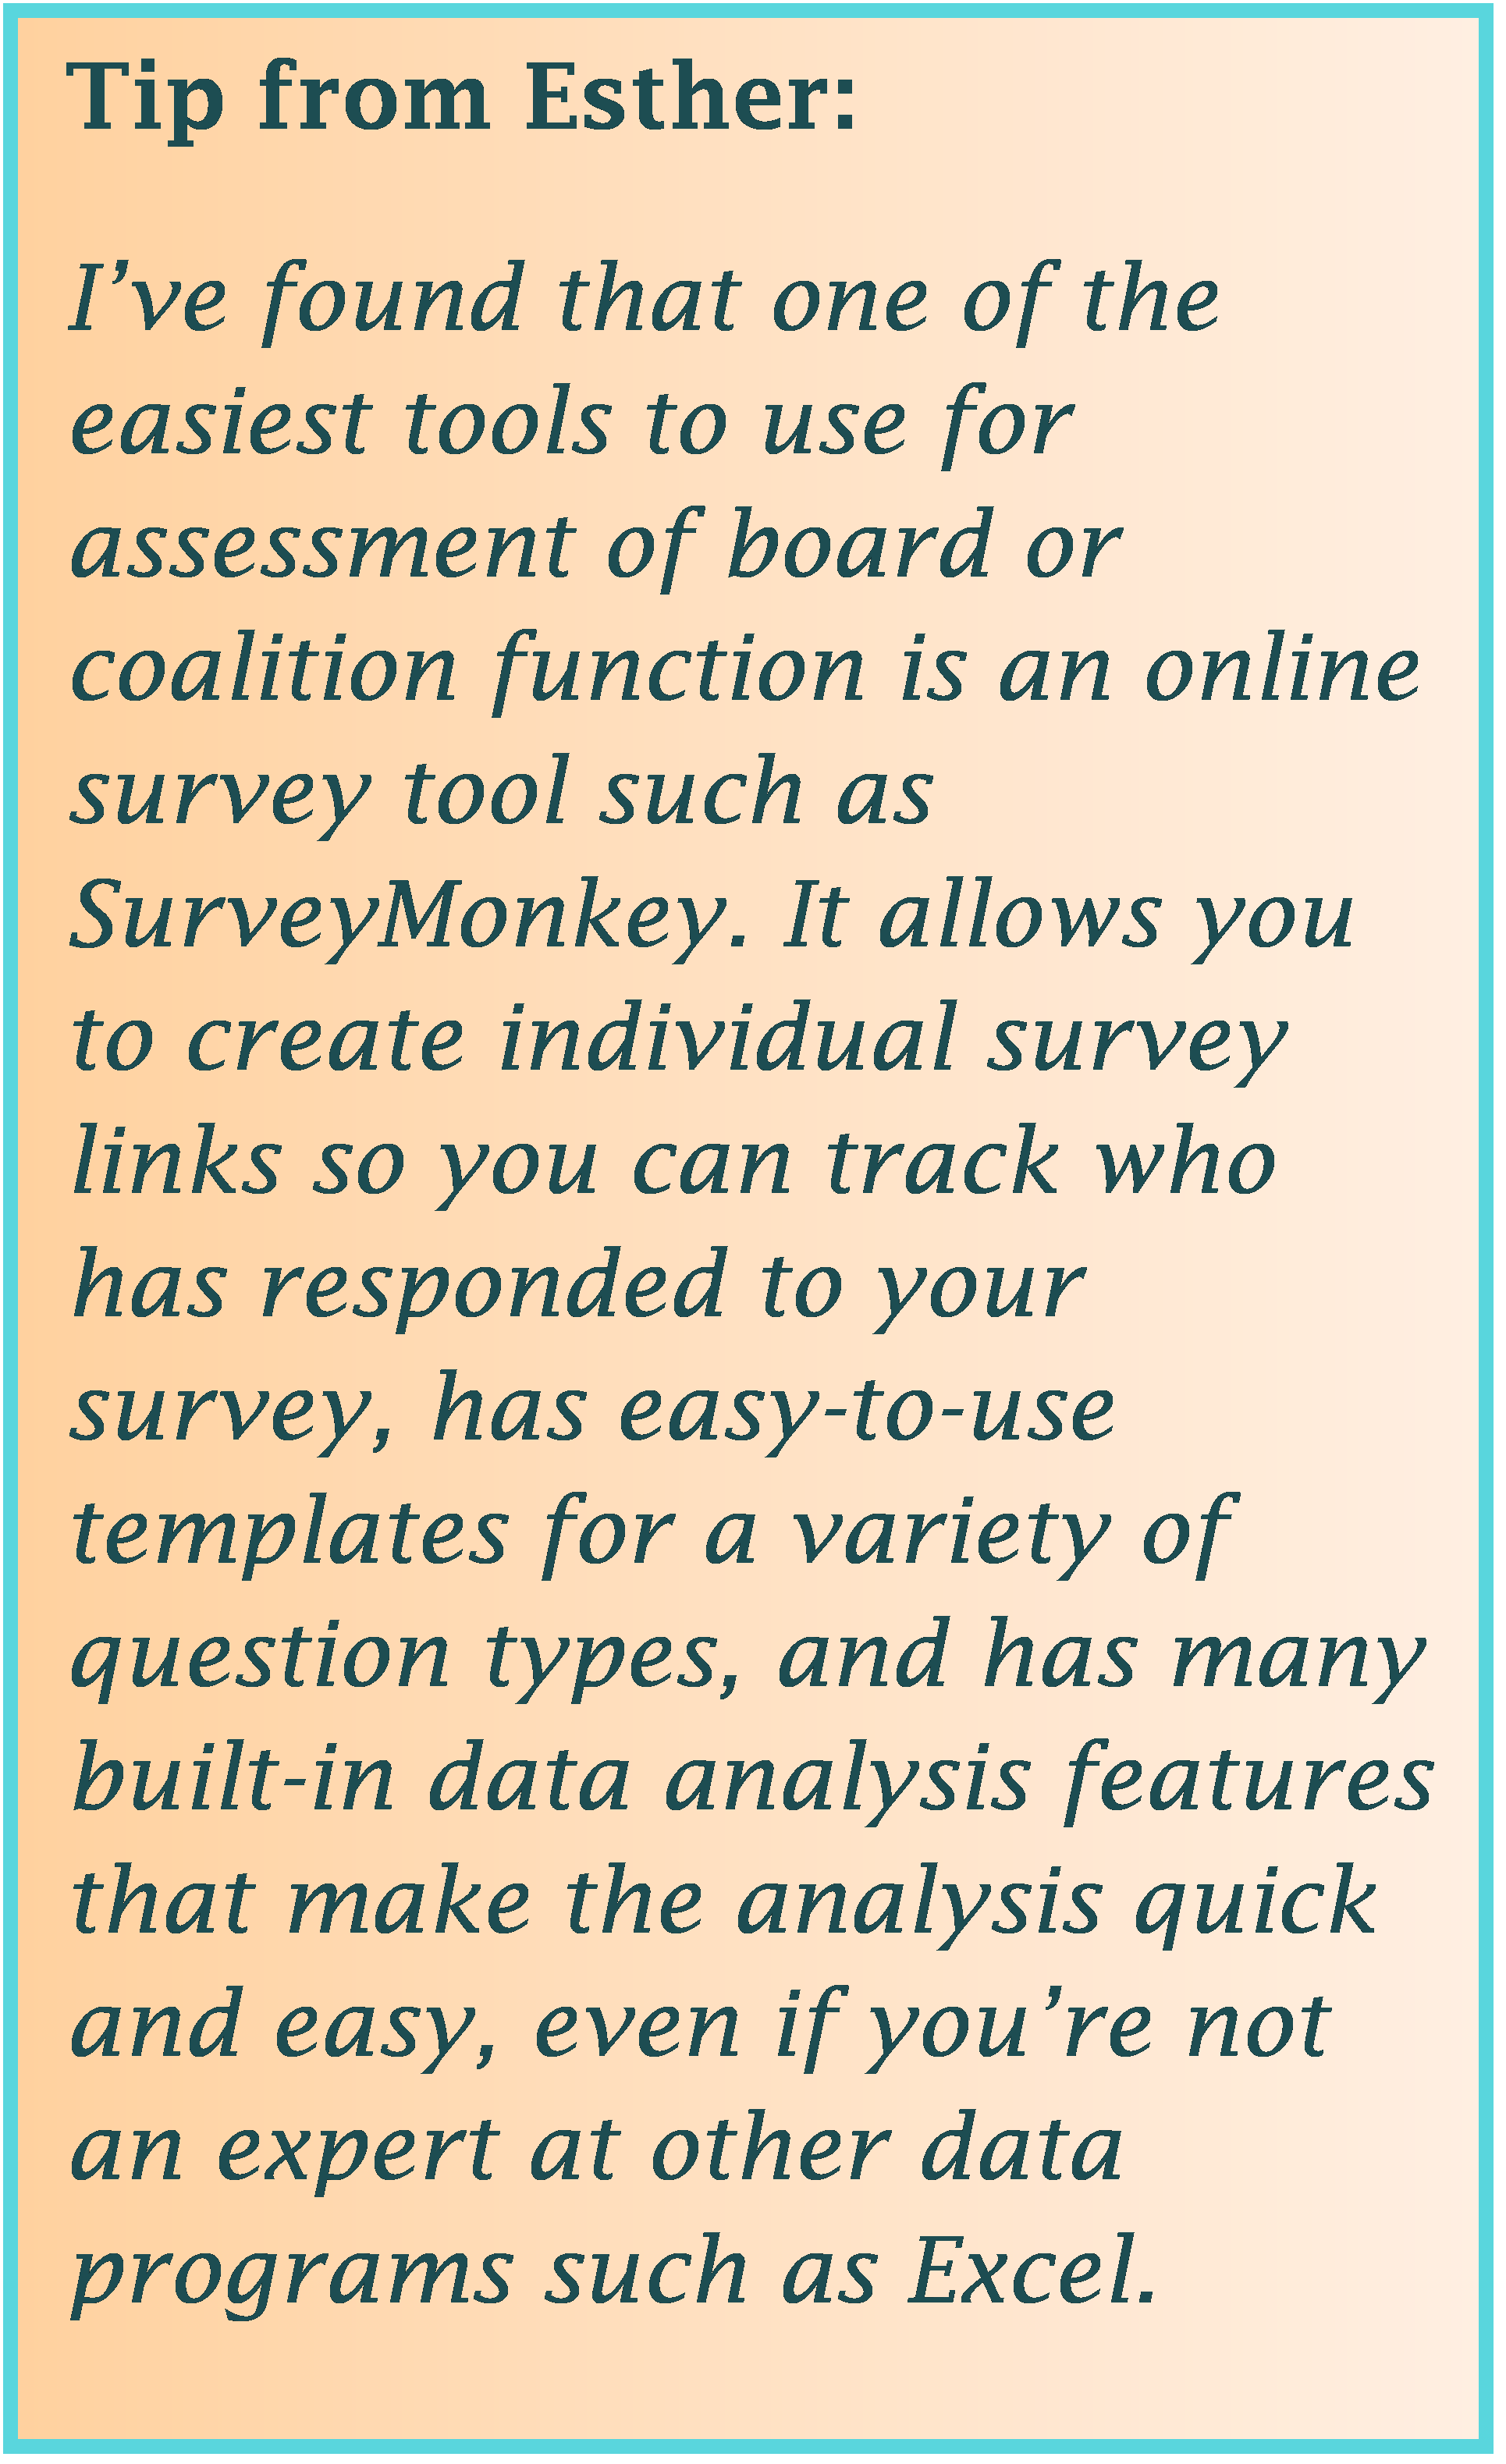 An online survey tool such as SurveyMonkey is easy to use for network or board assessments.